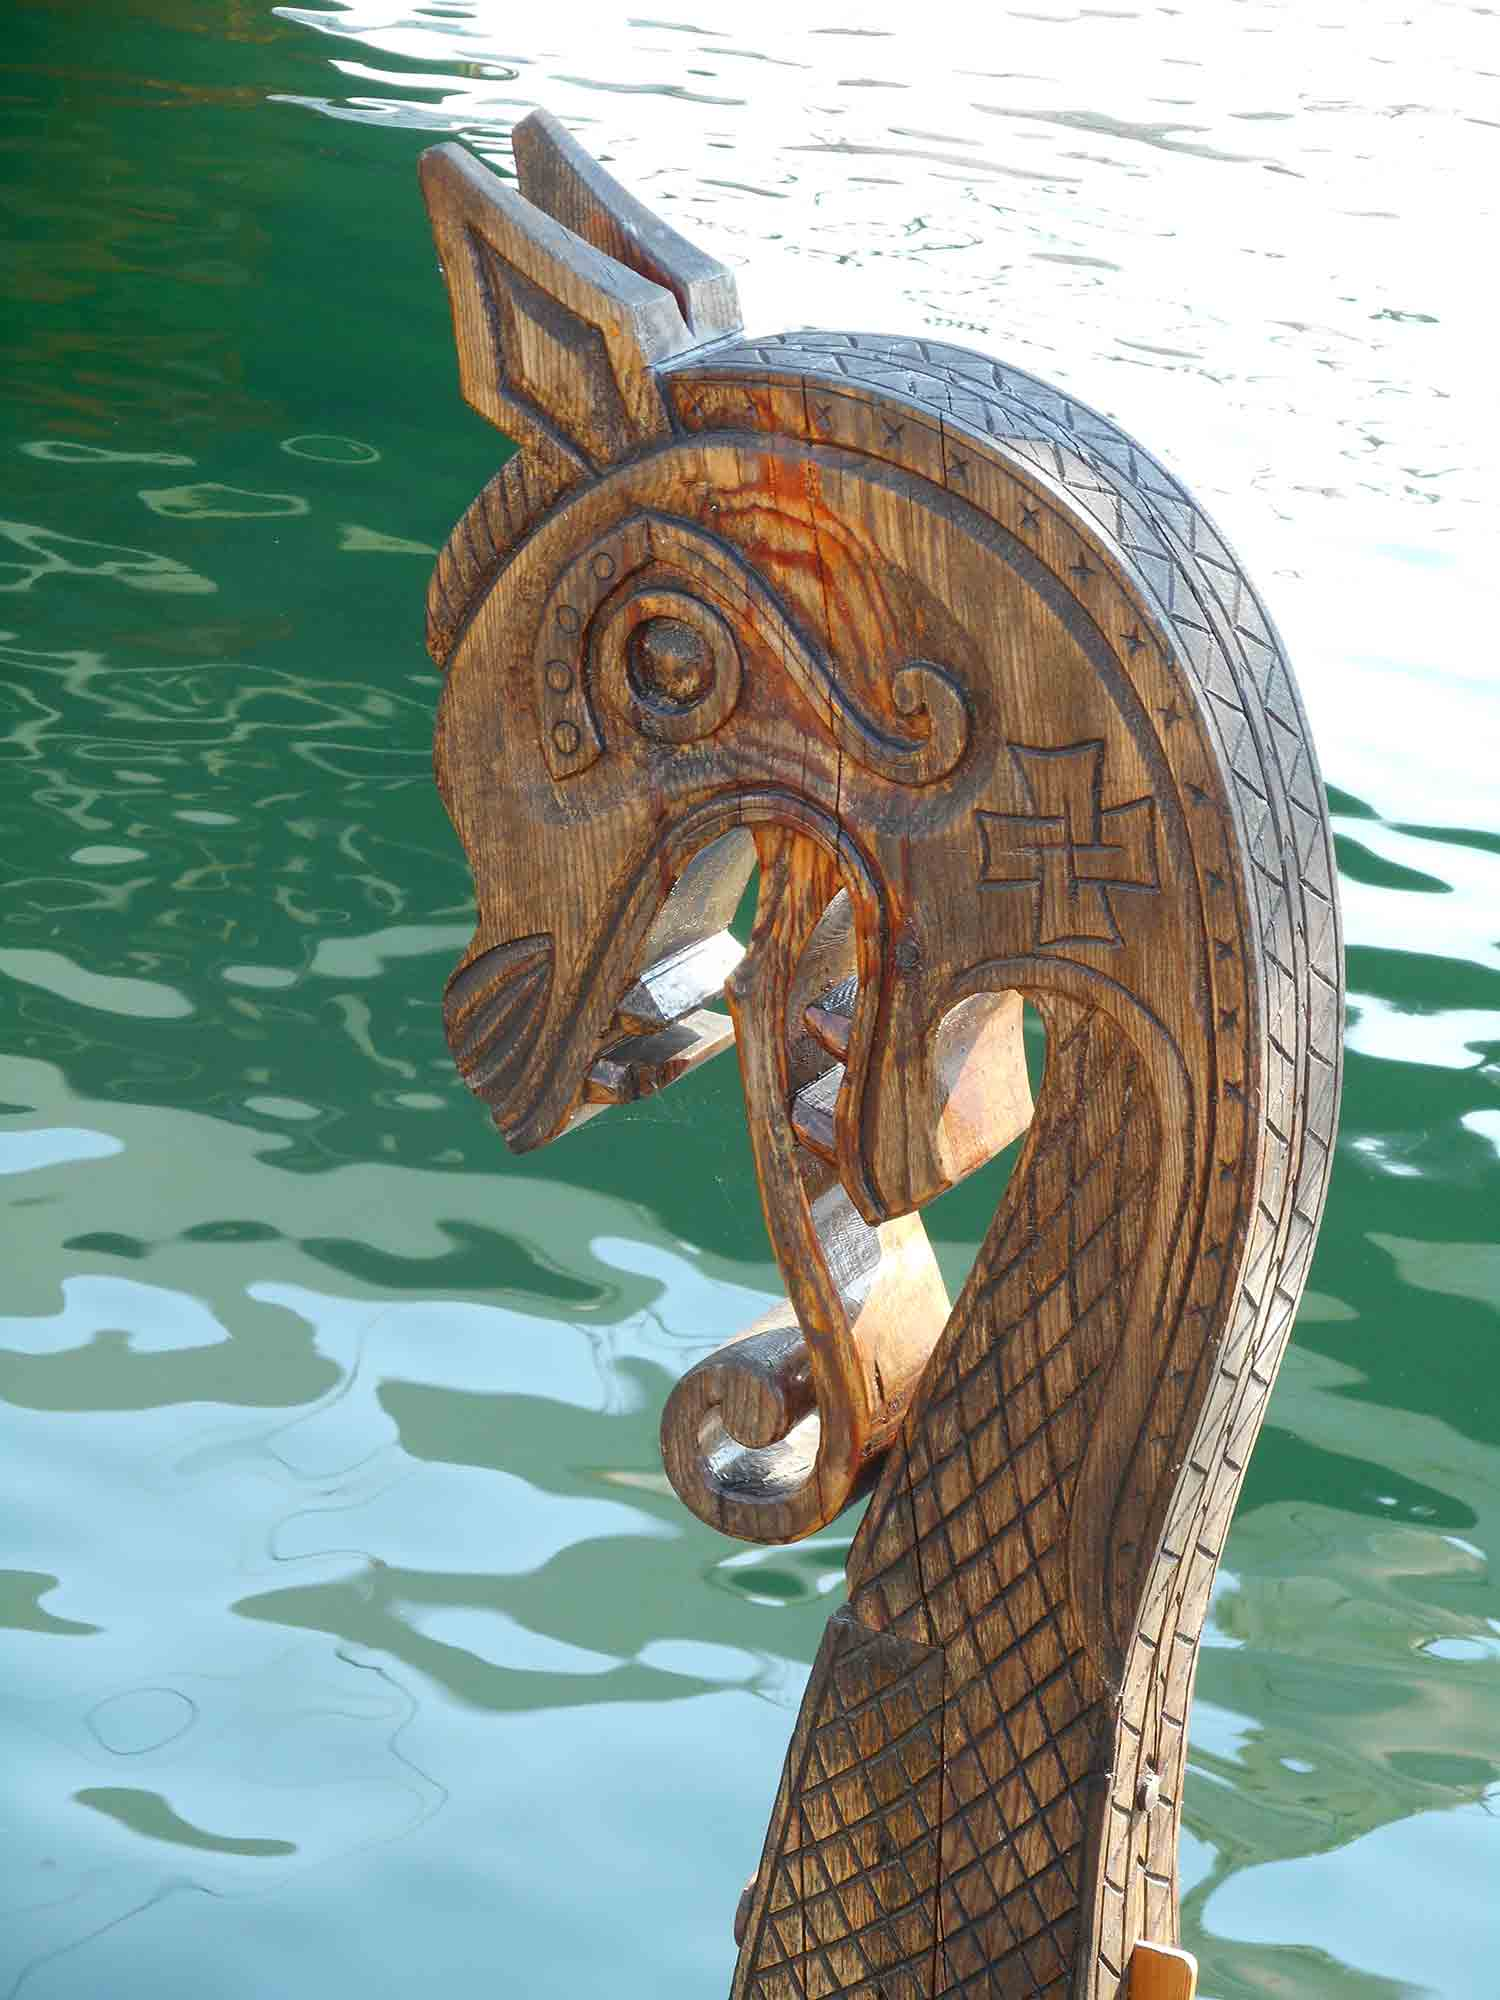 Find out more about Norwegian viking history on your holiday in Norway.jpg